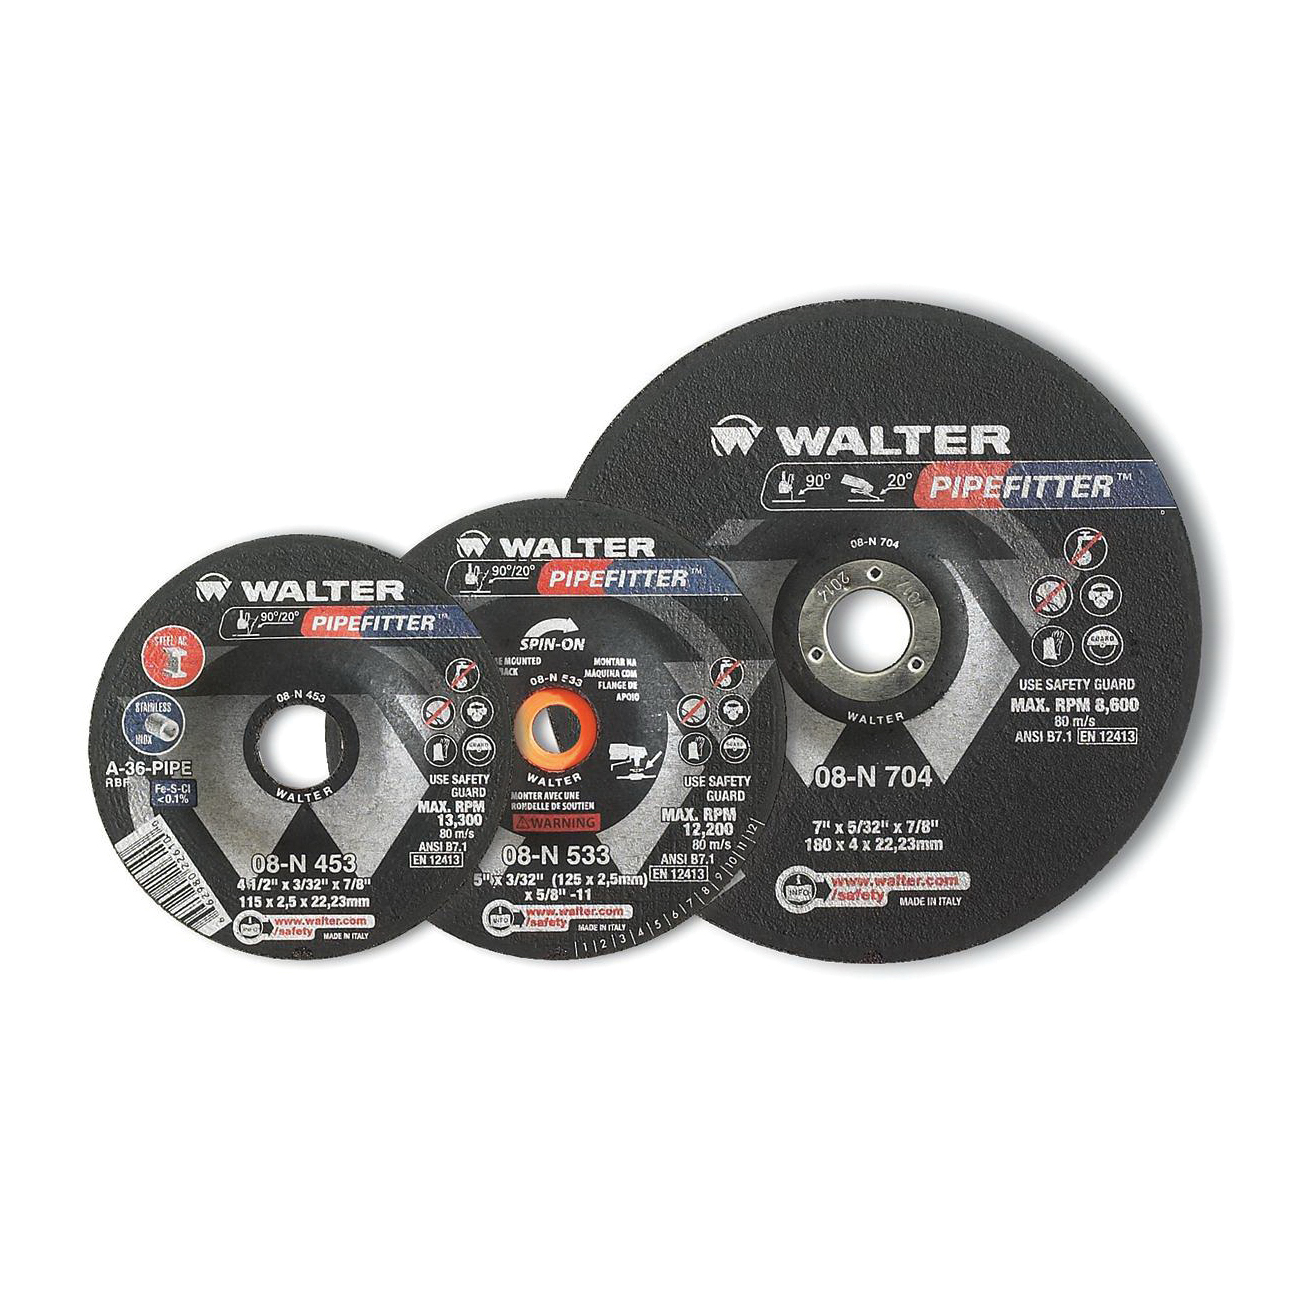 Walter Surface Technologies PIPEFITTER™ 08N503 Depressed Center Wheel, 5 in Dia x 3/32 in THK, 7/8 in Center Hole, 36 Grit, Aluminum Oxide Abrasive